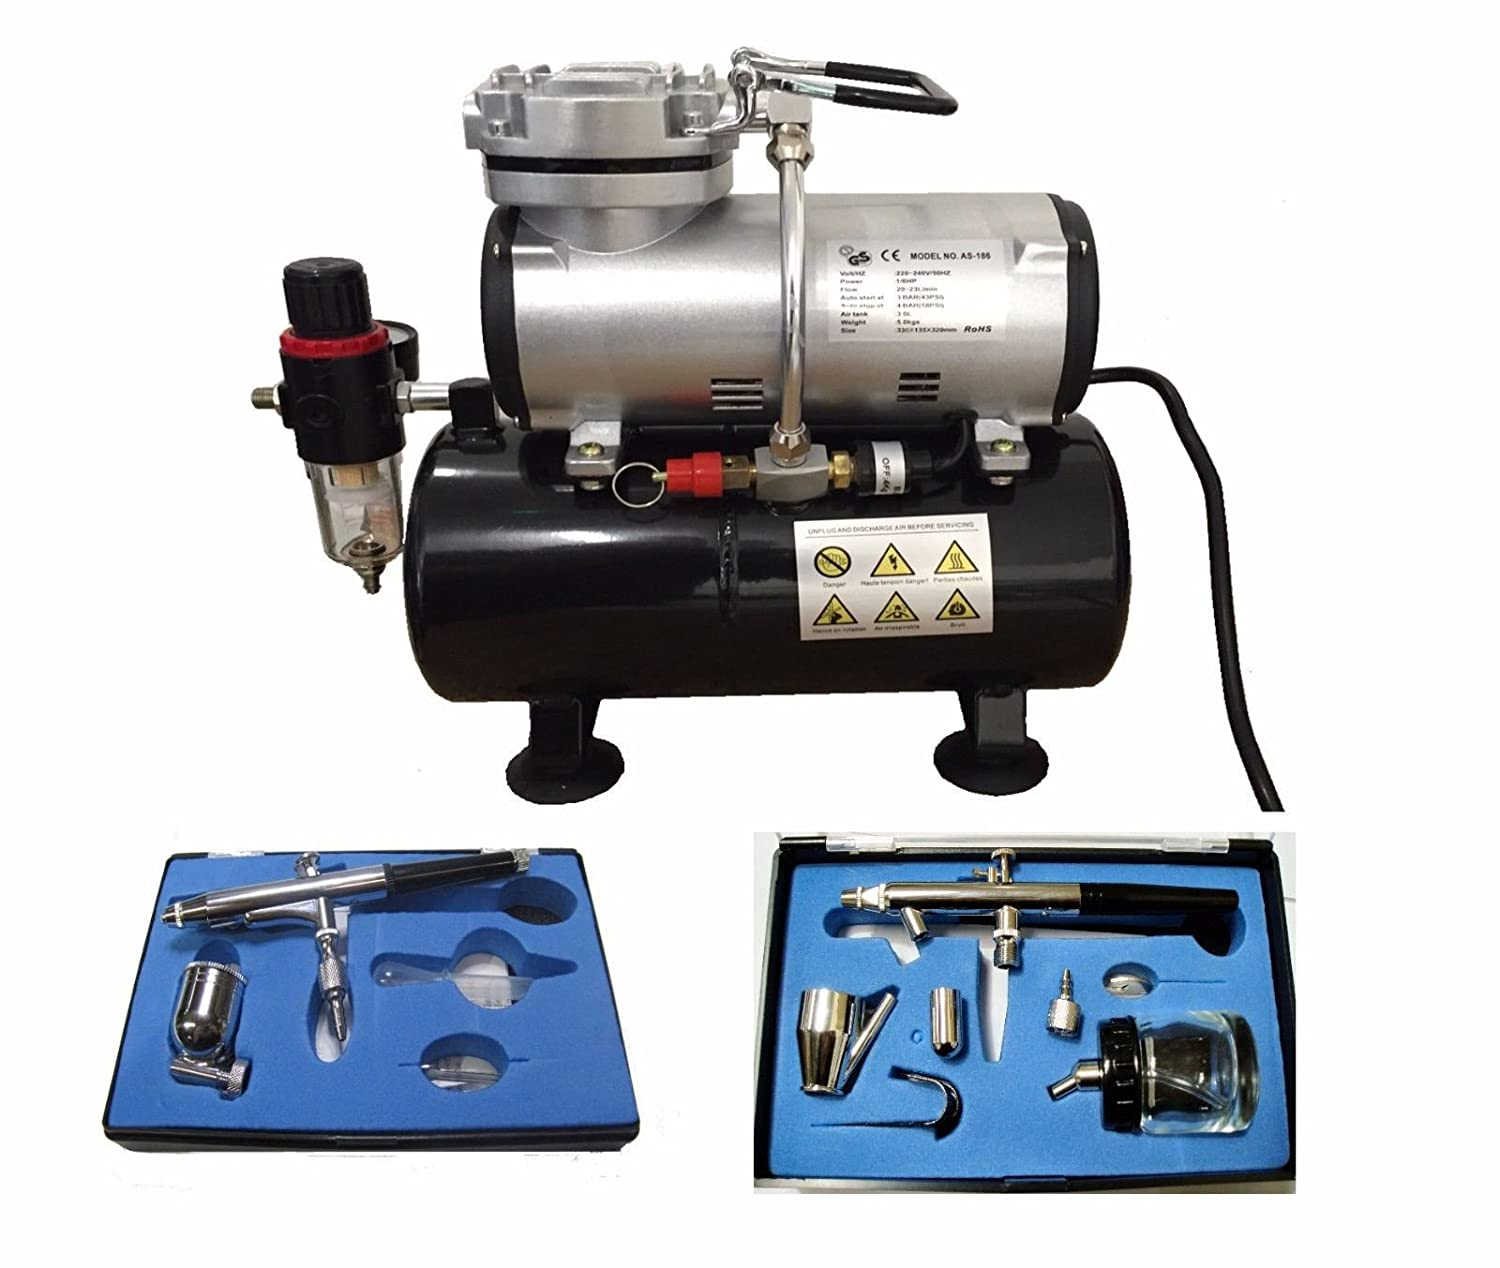 RDGTOOLS AIRBRUSH COMPRESSOR WITH TANK AIR BRUSHES 132 + 128 AND HOSE